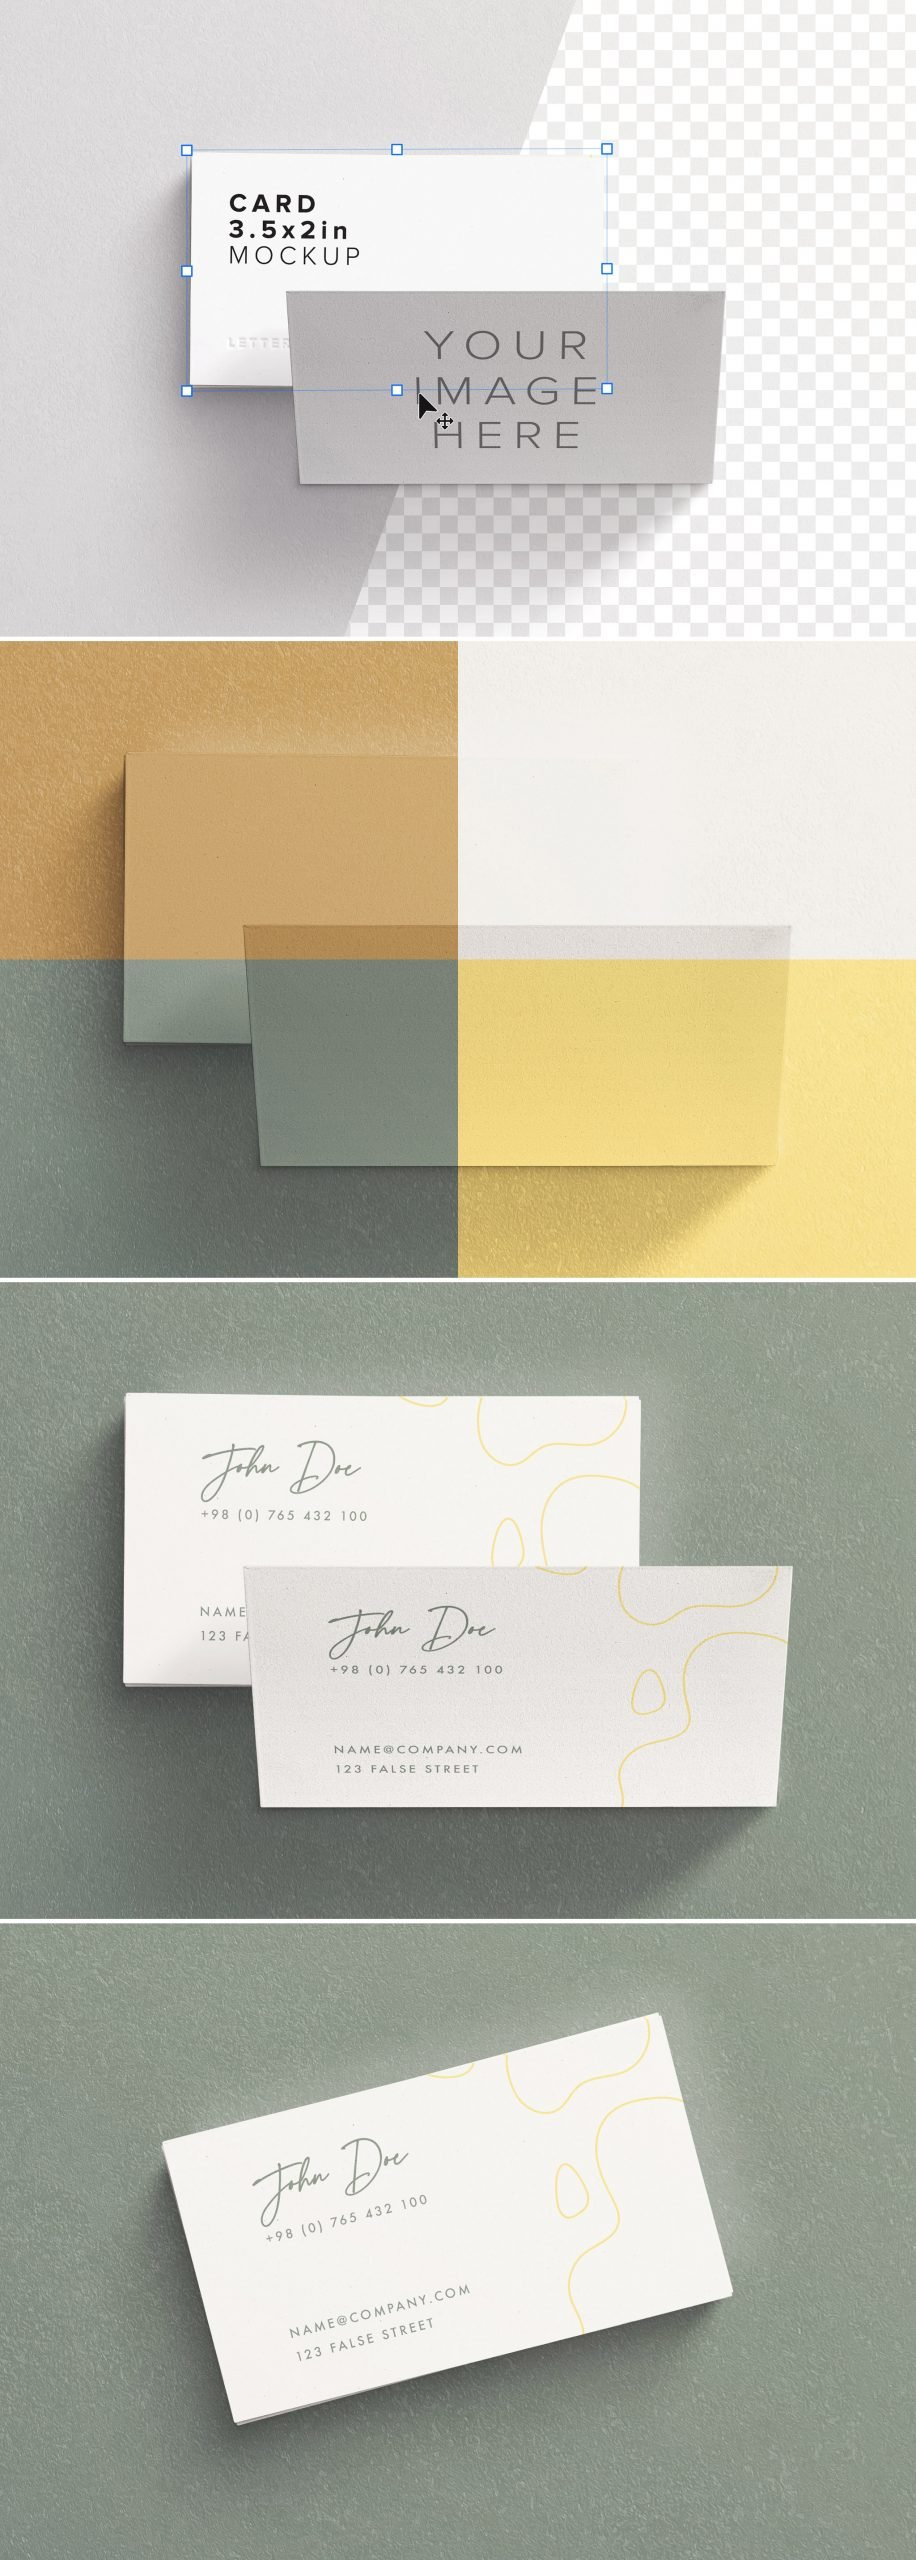 business cards layout 2 preview scaled